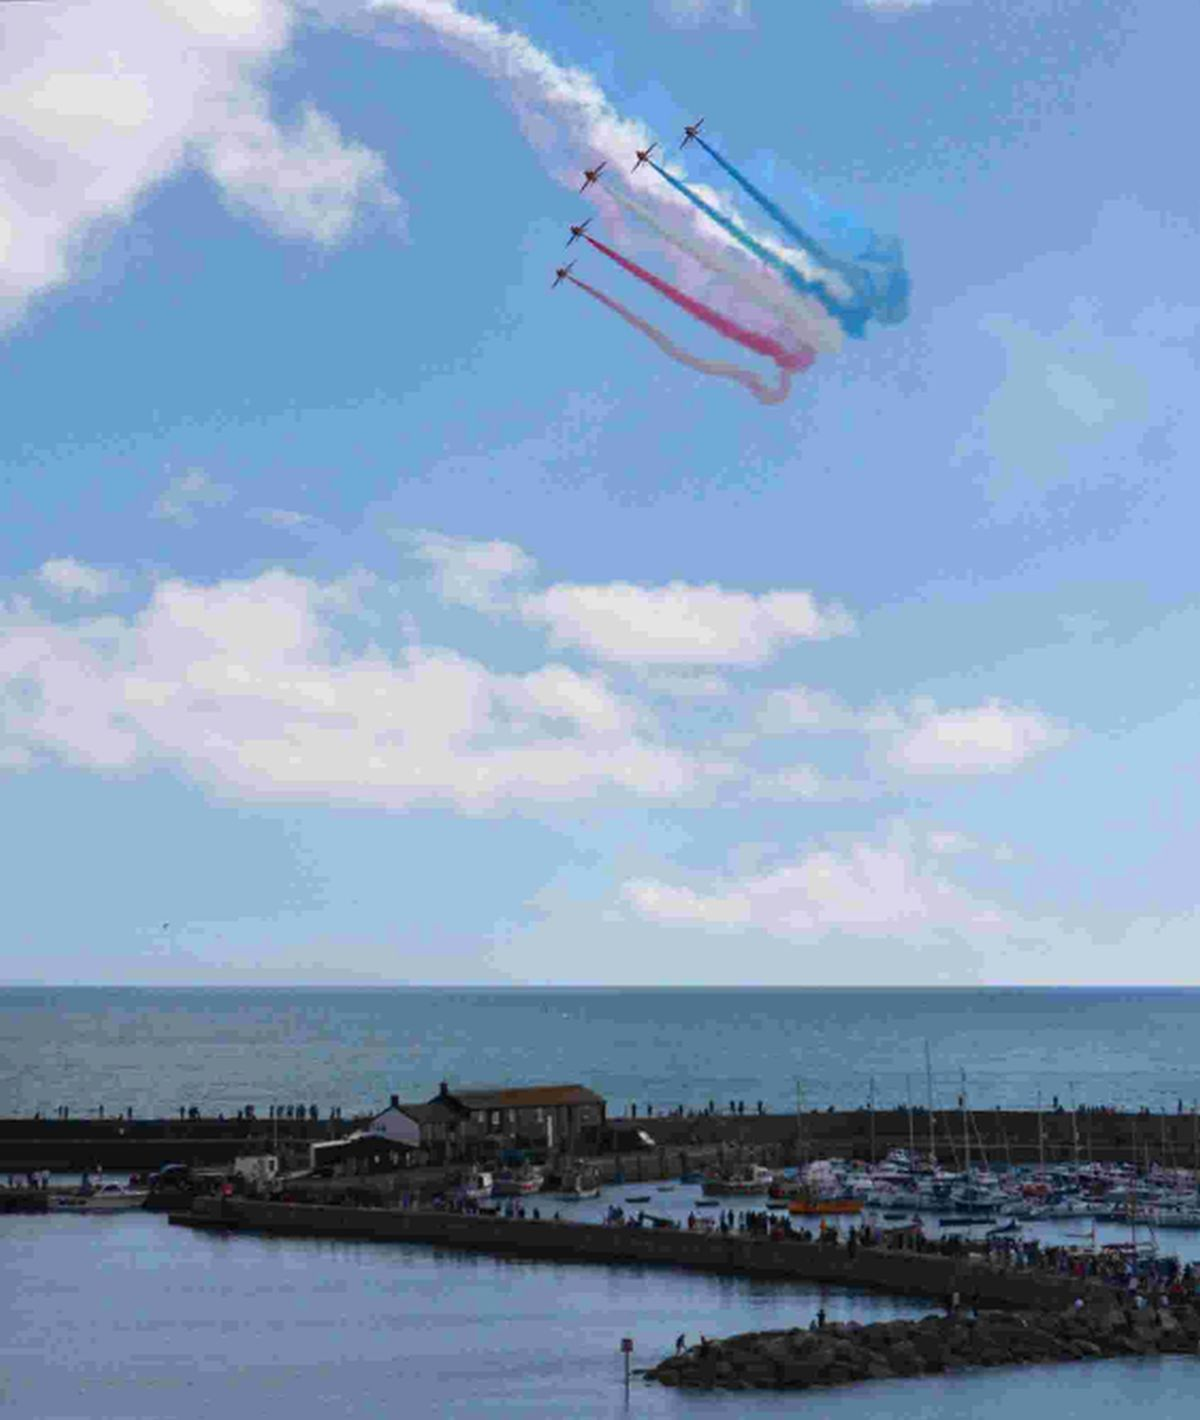 SKY HIGH: The Red Arrows soar over Lyme Regis as one of the highlights of Lyme Regis Lifeboat Week